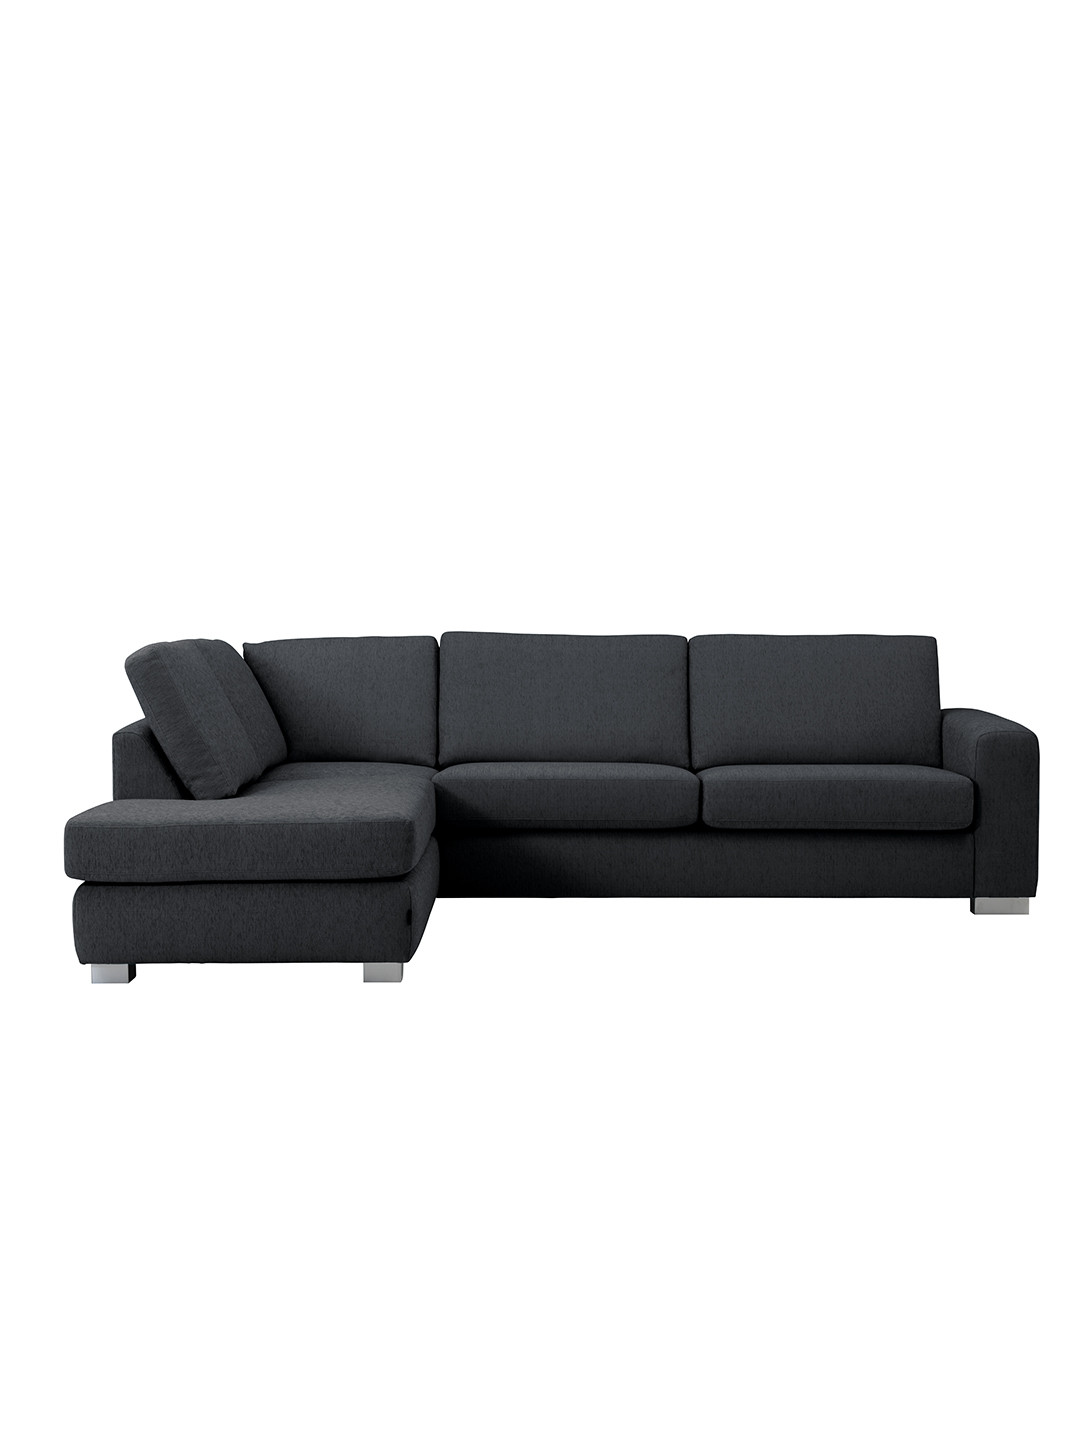 Edge sectional mariette clermont for Liquidation sofa sectionnel